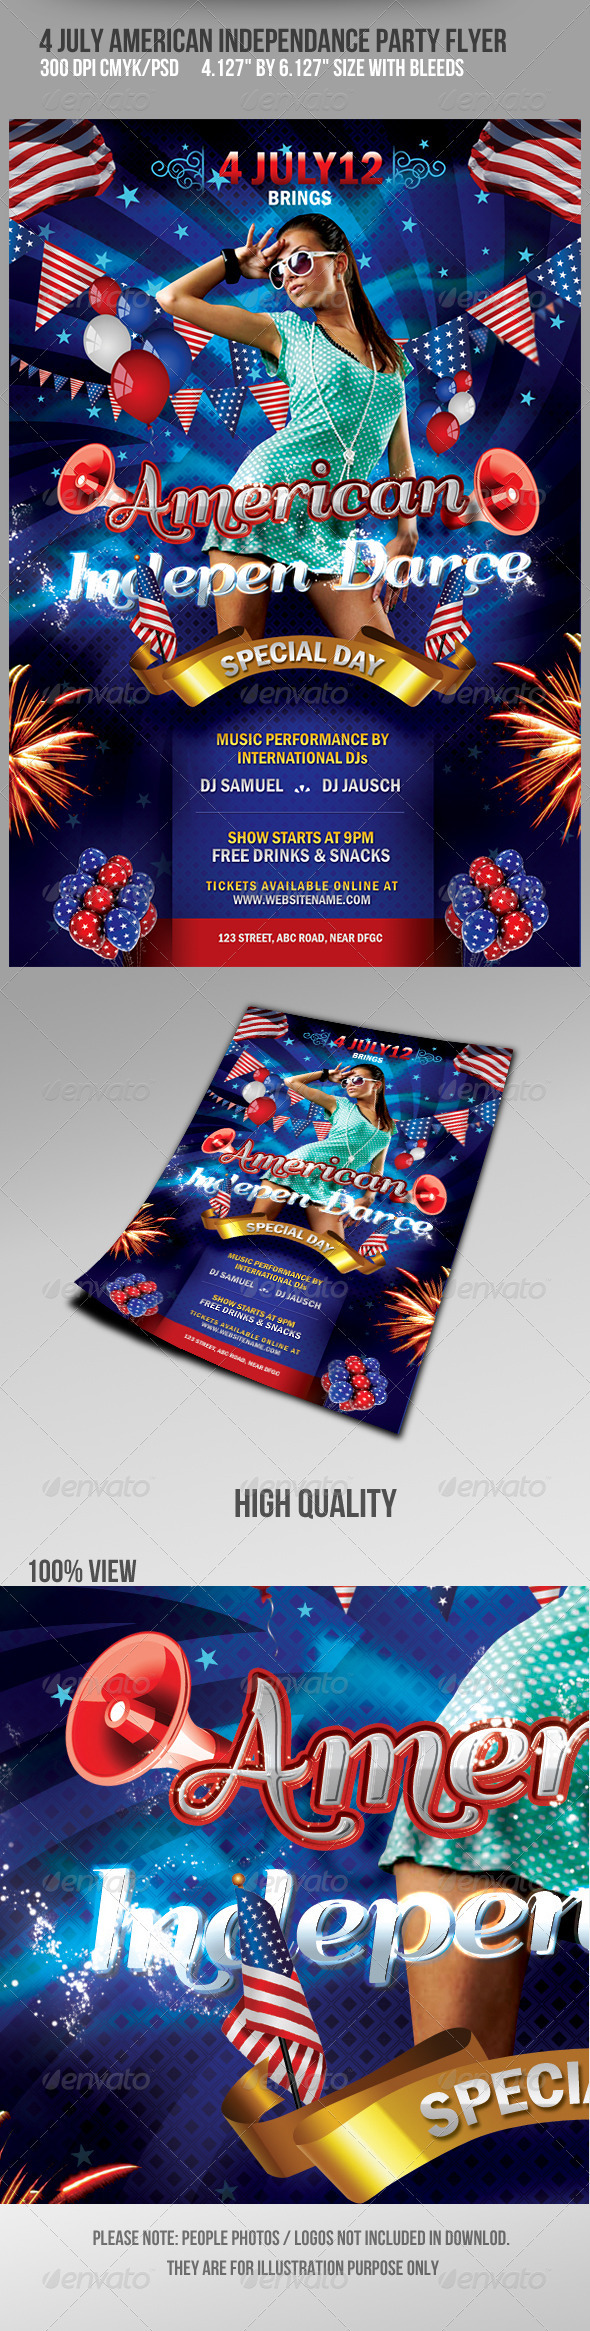 4th July American Independance Party Flyer - Flyers Print Templates